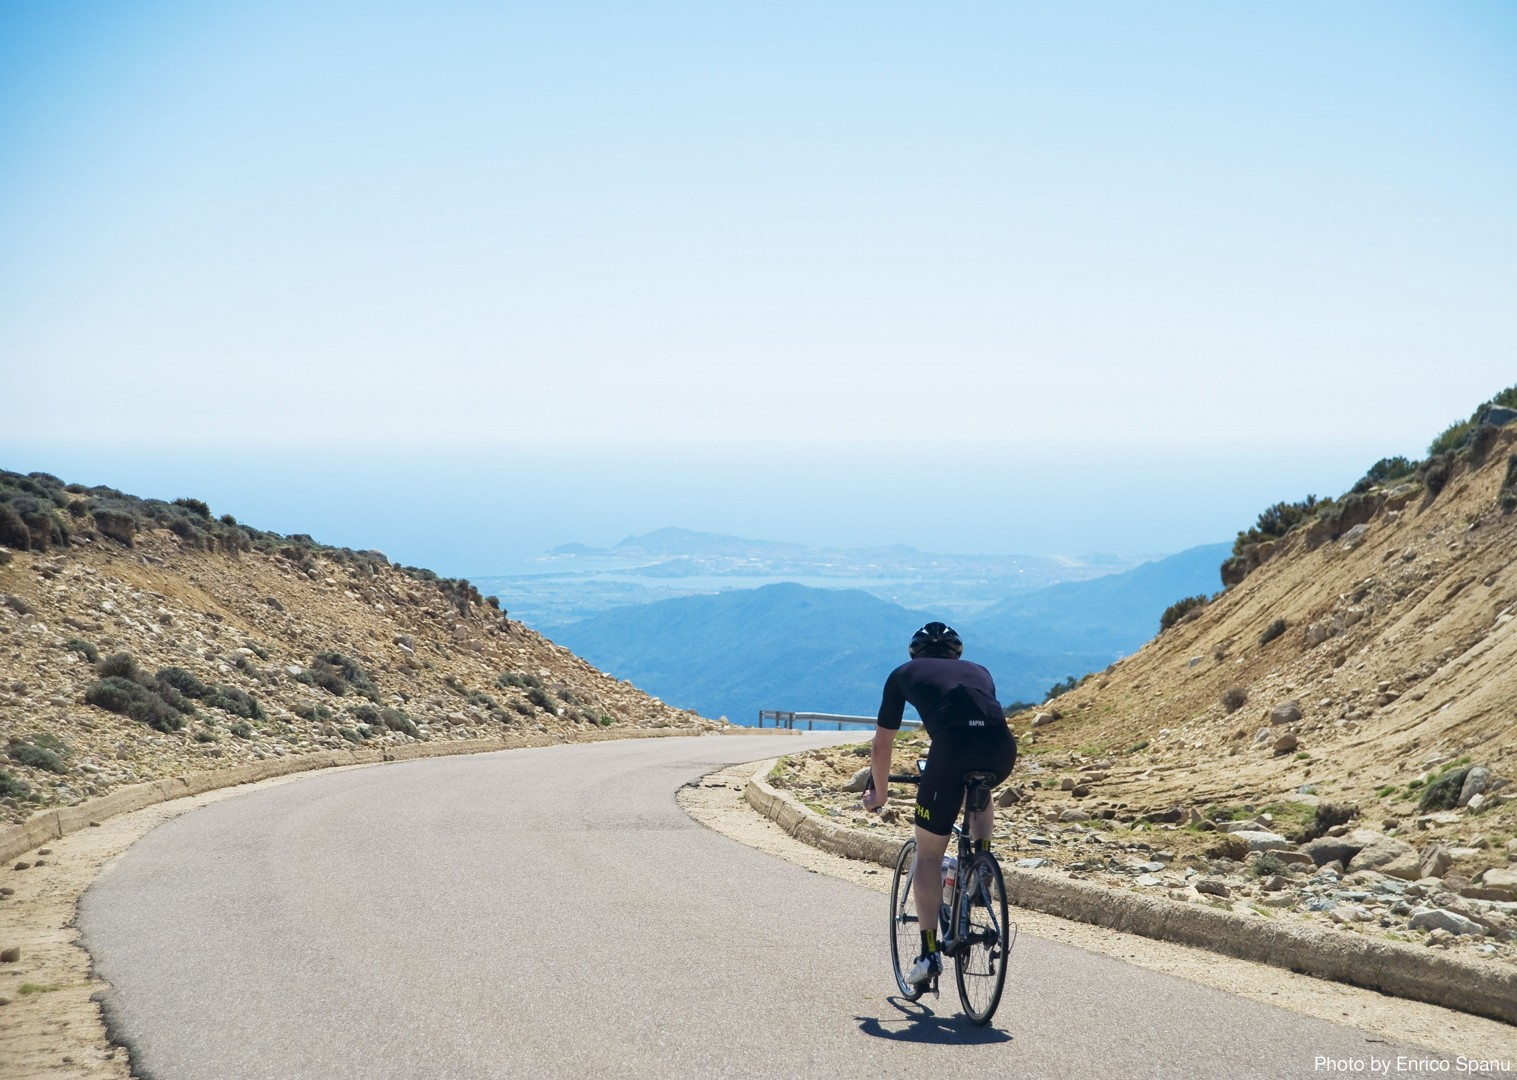 Guided-Road-Cycling-Holiday-Sardinia-Sardinian-Mountains-Tacchi-dOgliastra.jpg - Italy - Sardinia - Mountain Explorer - Guided Road Cycling Holiday - Road Cycling